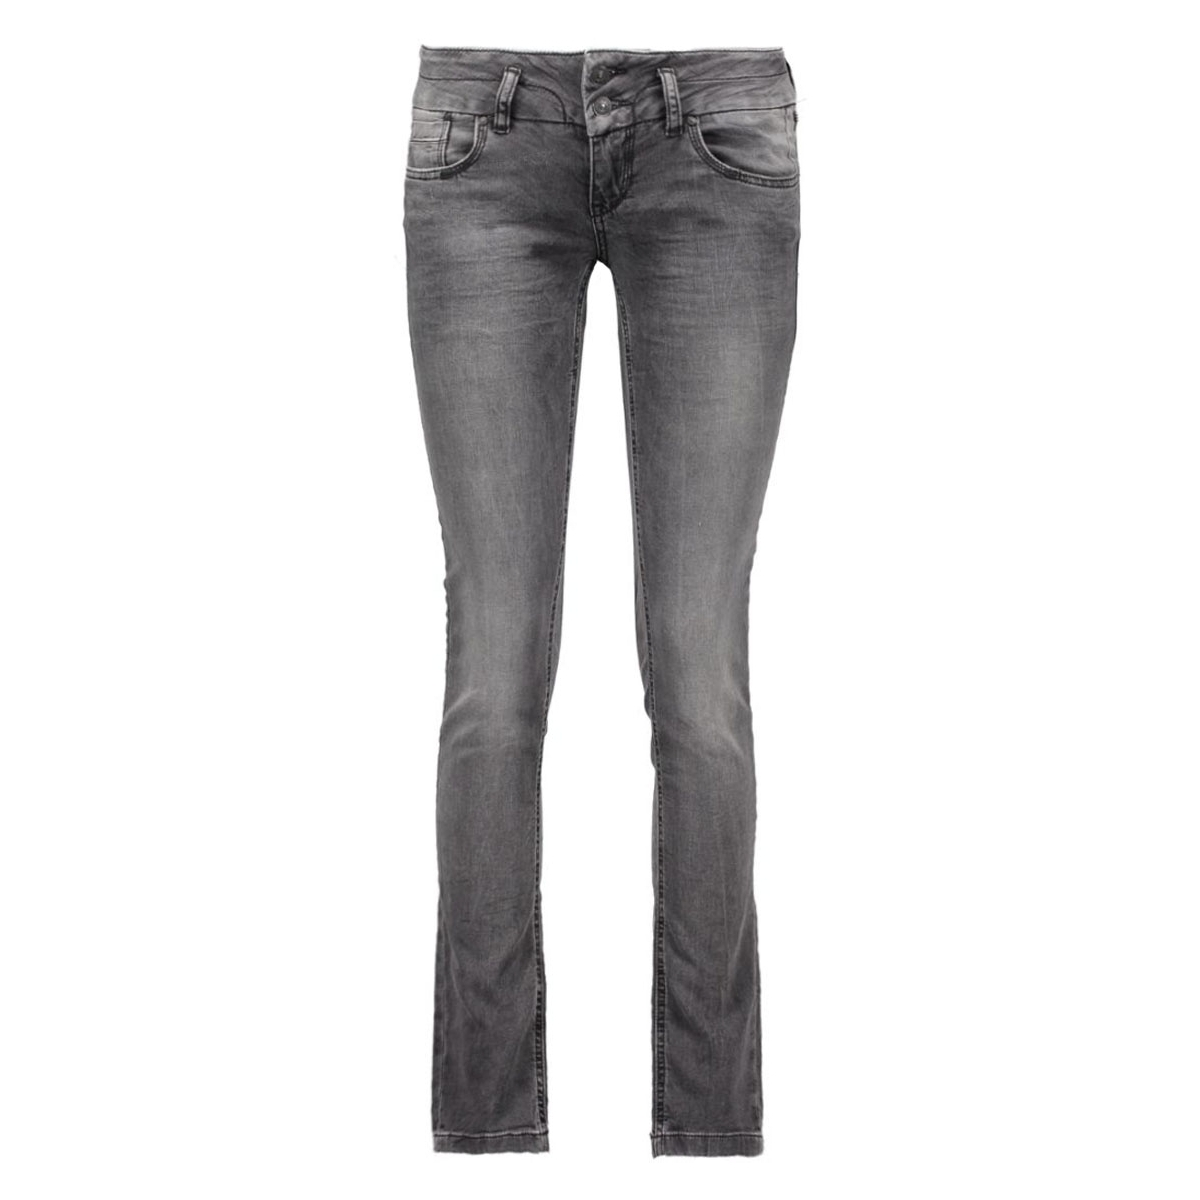 100950618.13575 zena ltb jeans crey cloud wash